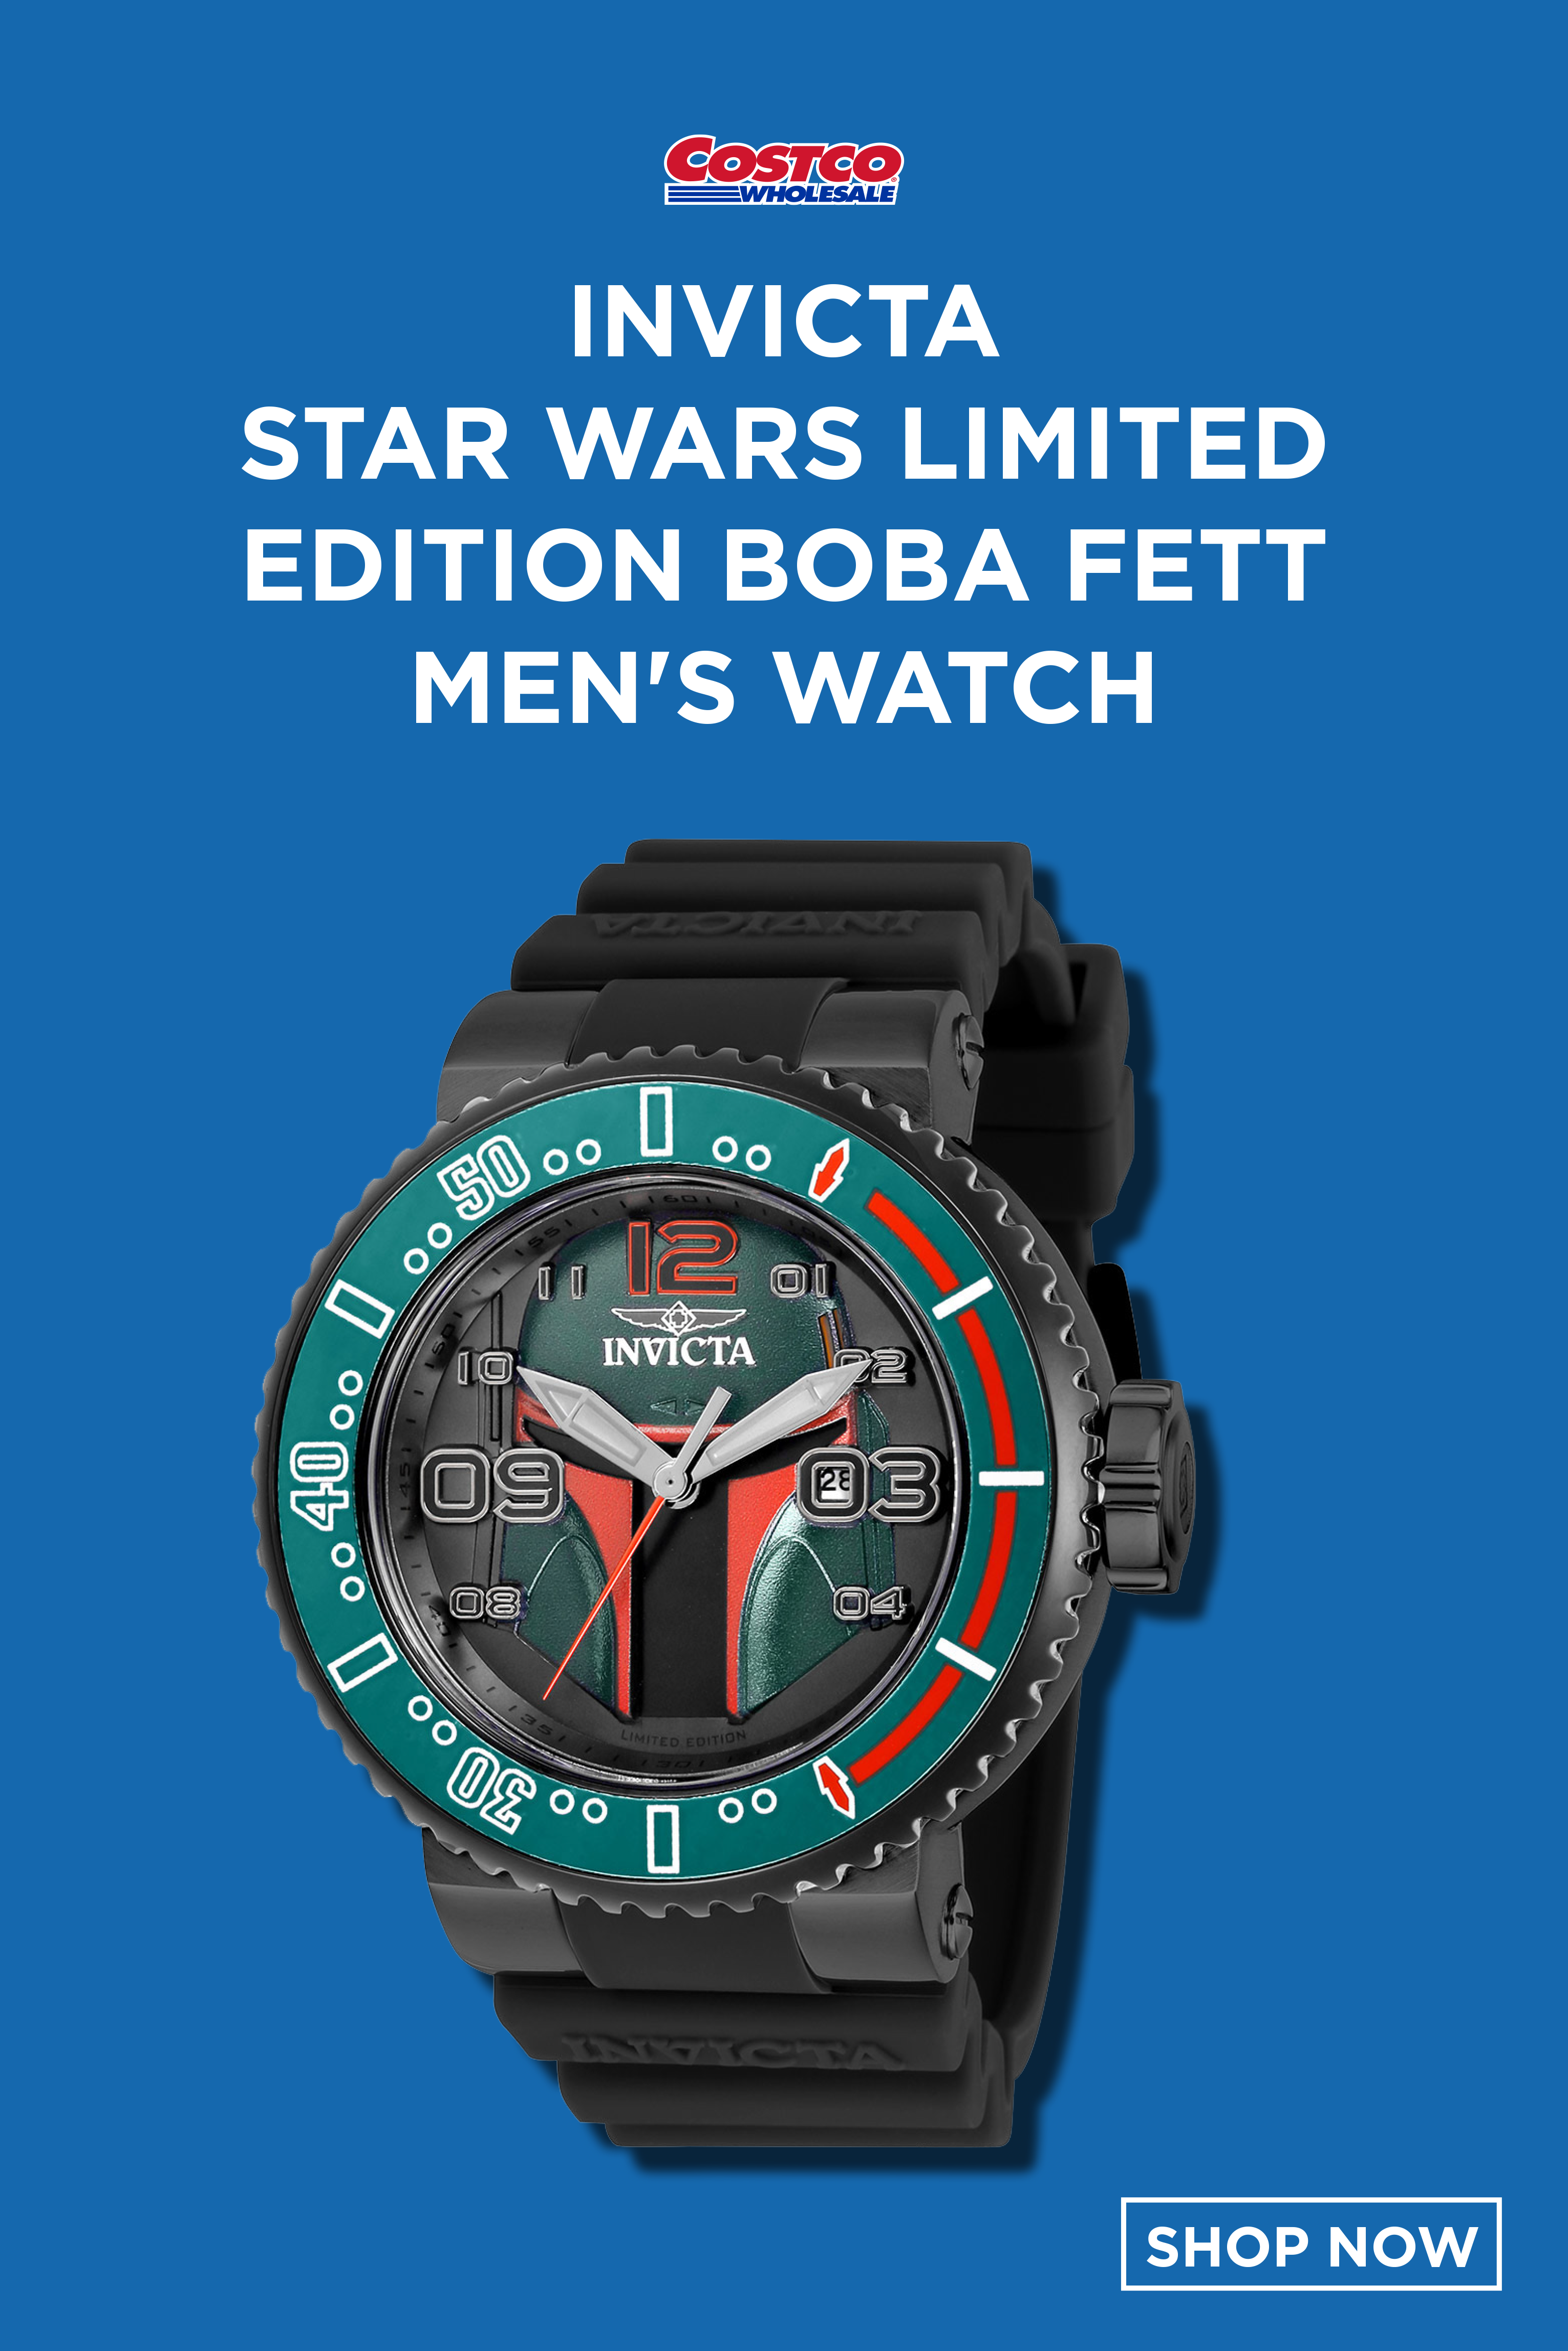 Invicta Star Wars Limited Edition Boba Fett Men S Watch Watches For Men Classic Watches Men Mens Watches Affordable [ 4592 x 3063 Pixel ]